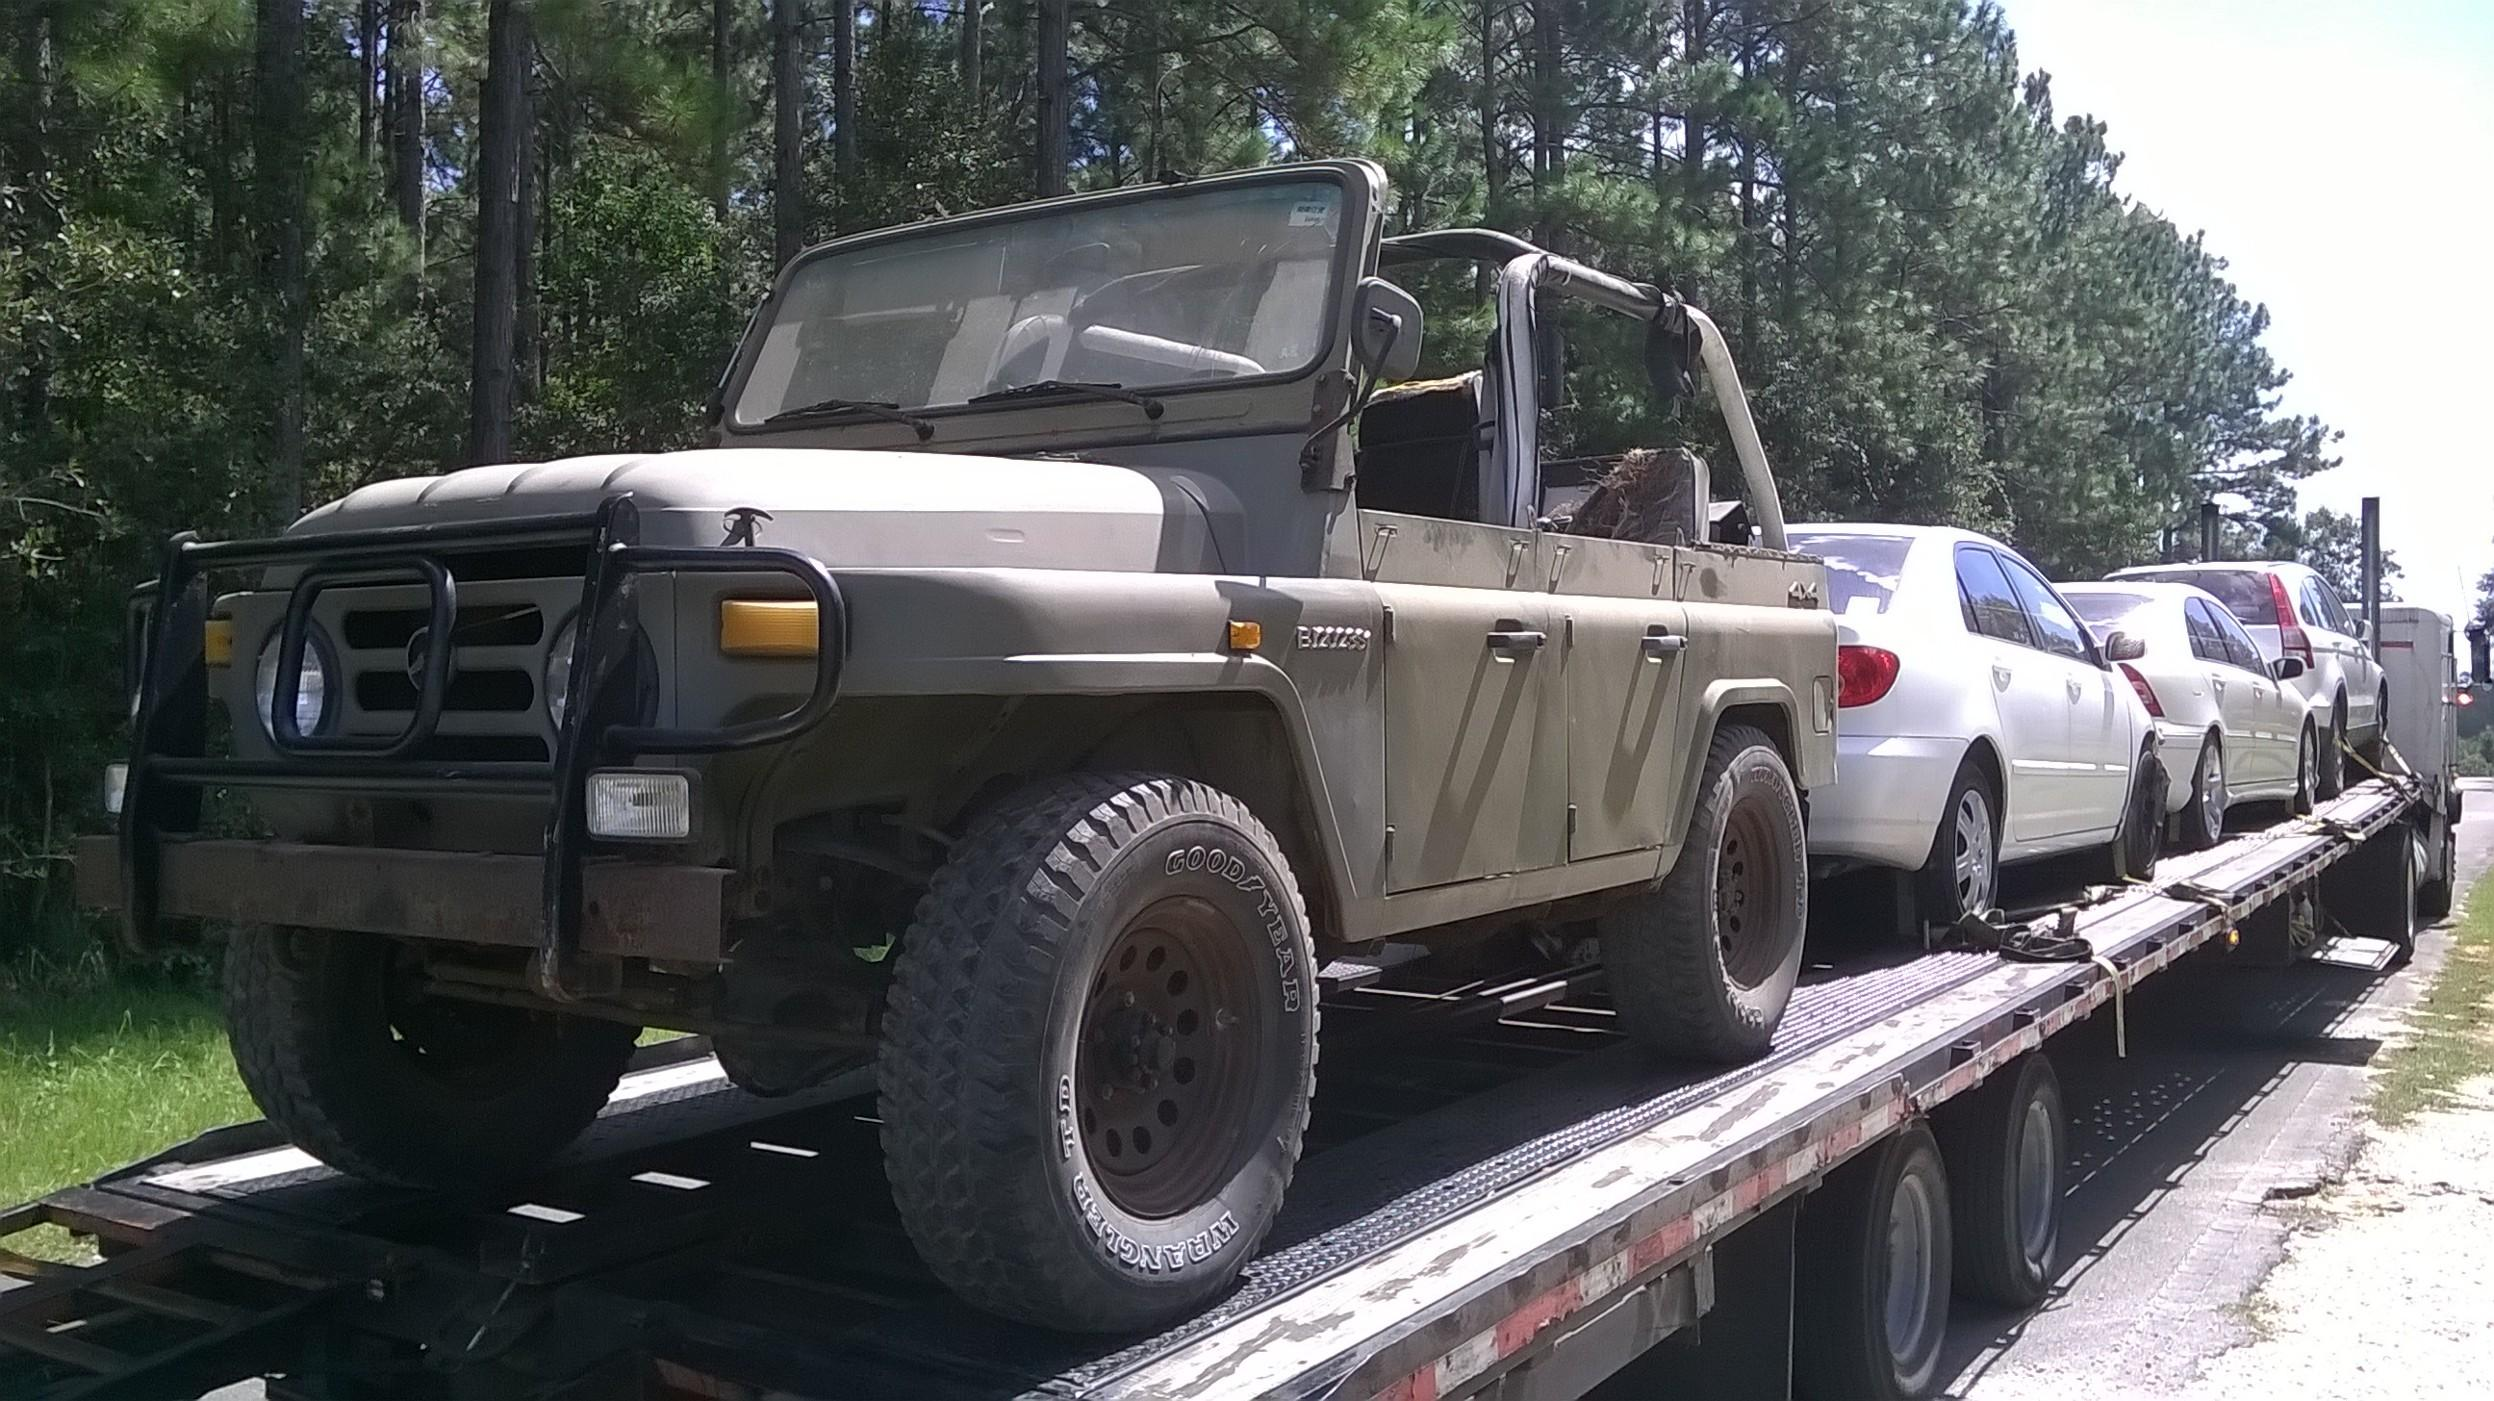 Beijing BJ2023 Military Jeep JUST ARRIVED like Land Rover